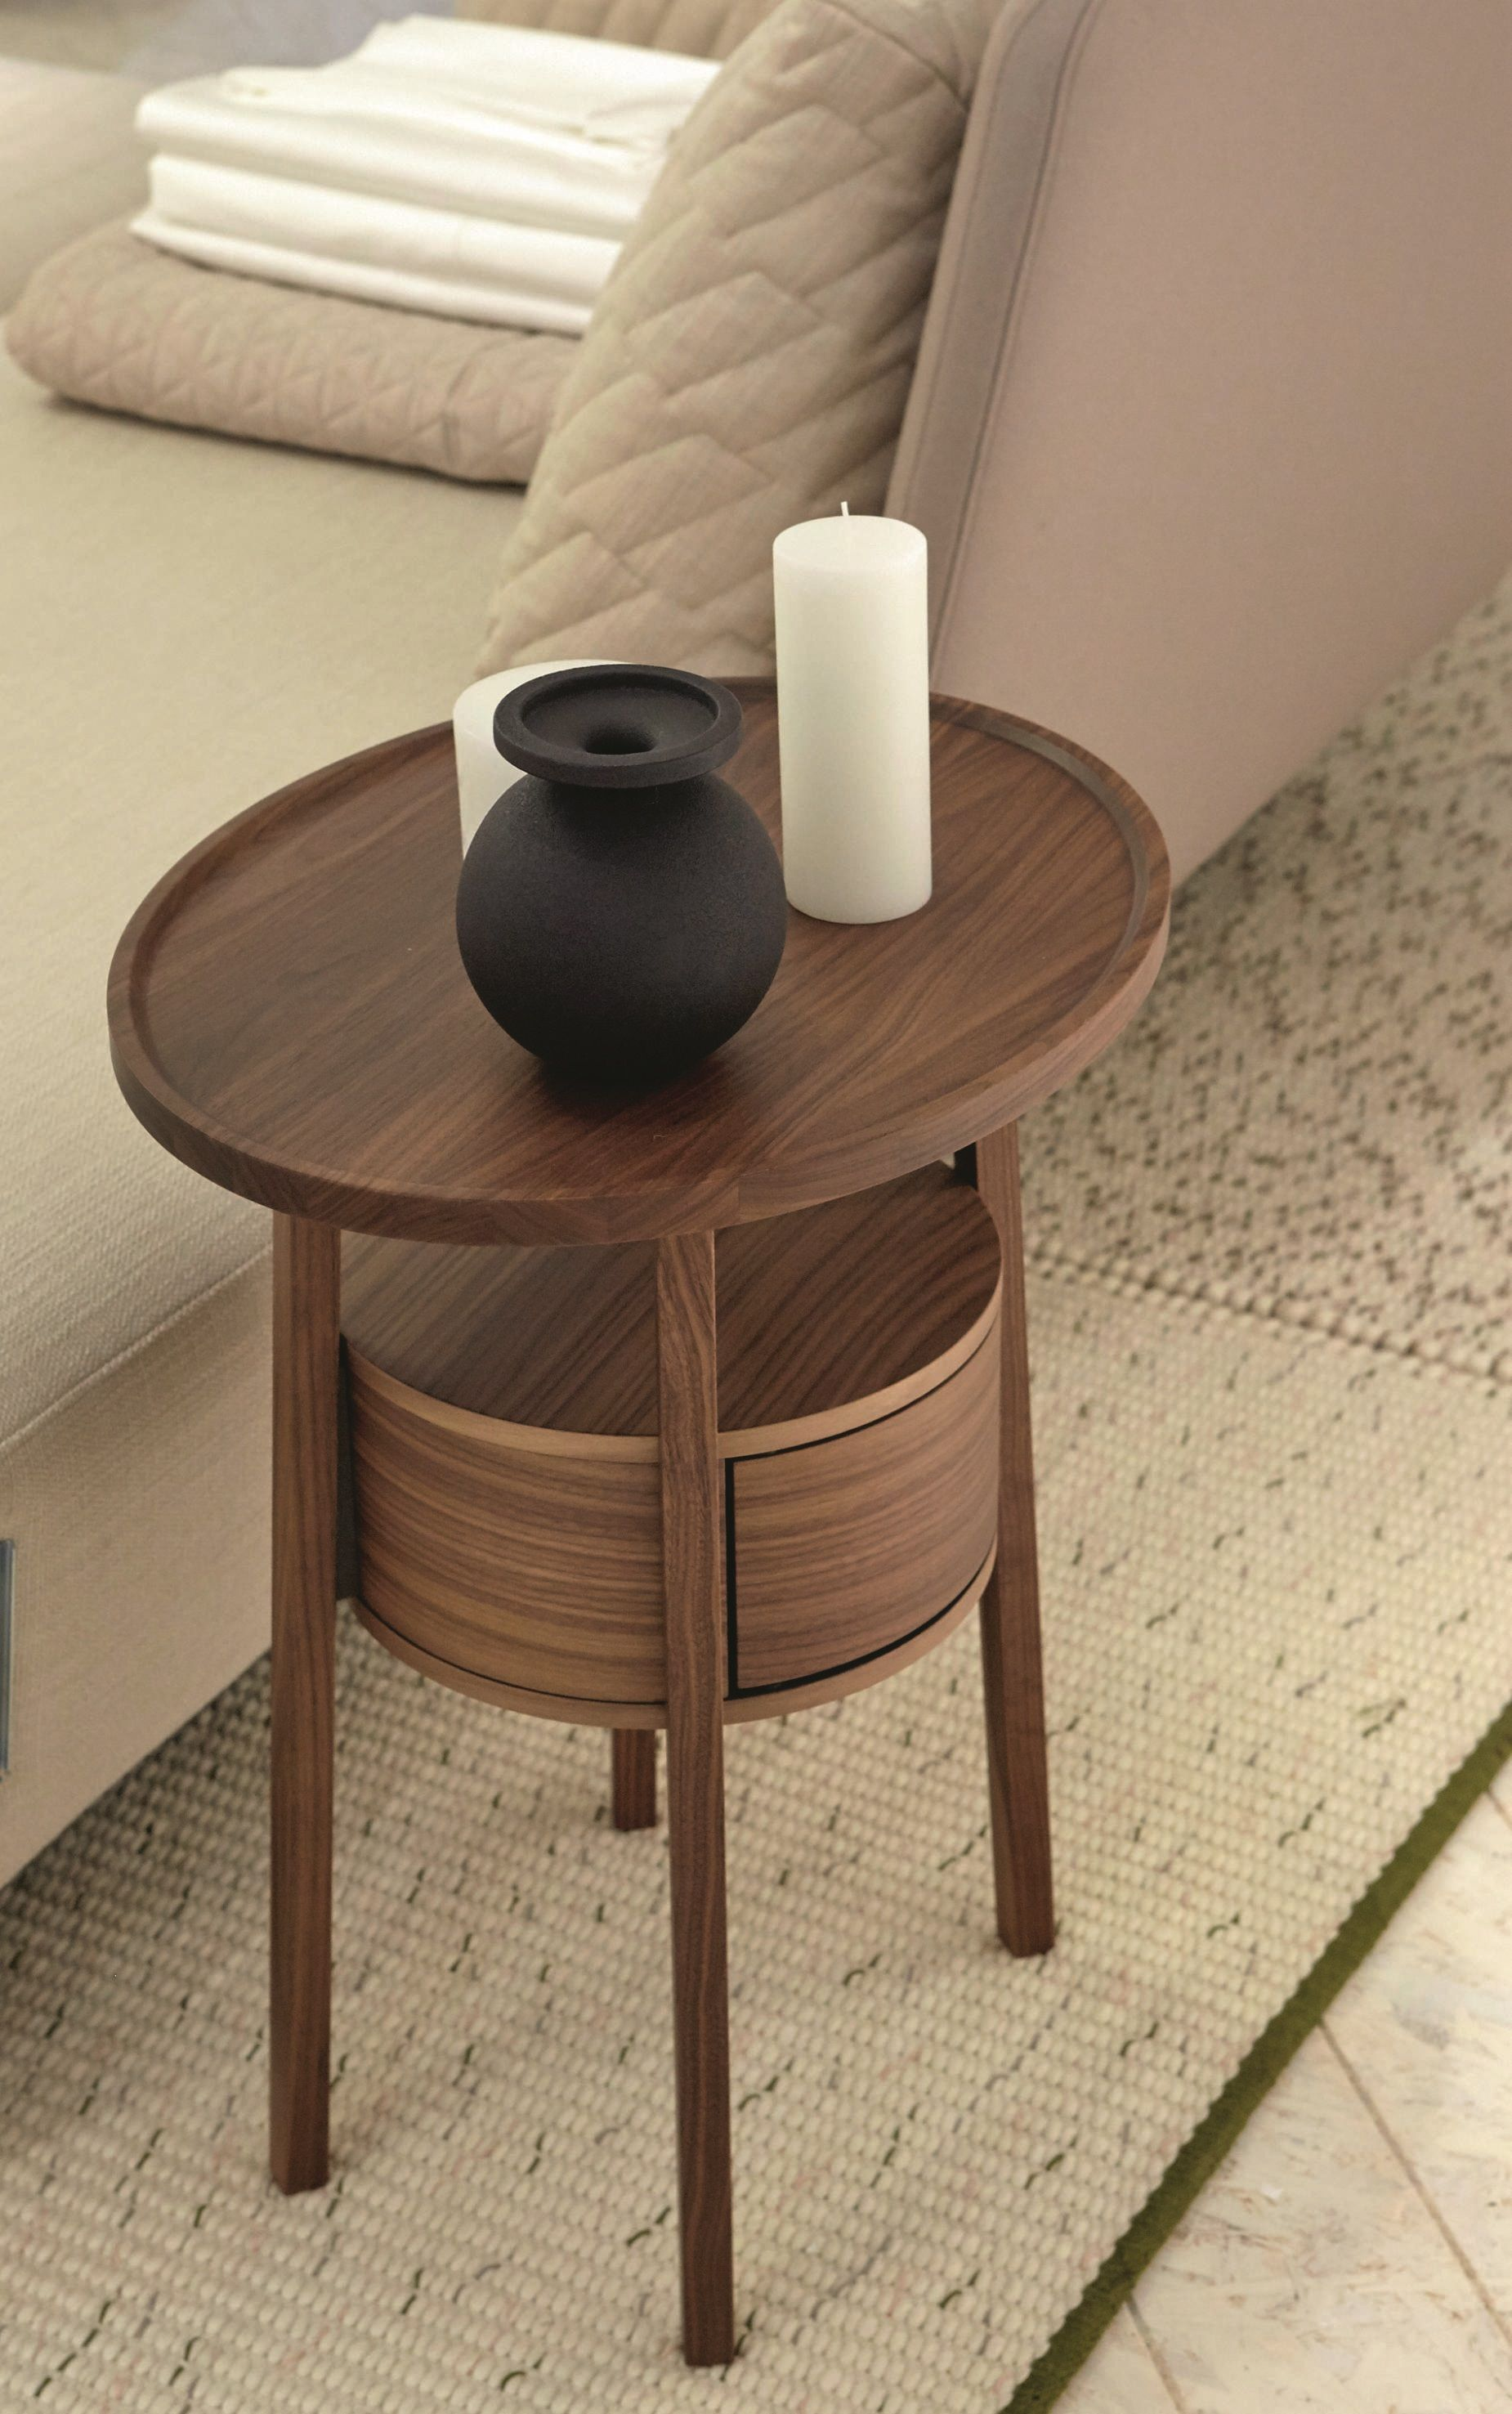 Episode By Marie Christine Dorner Is An Occasional Table With A Warm Inviting Character That Complements Its Practicality Furniture Furniture Design Table